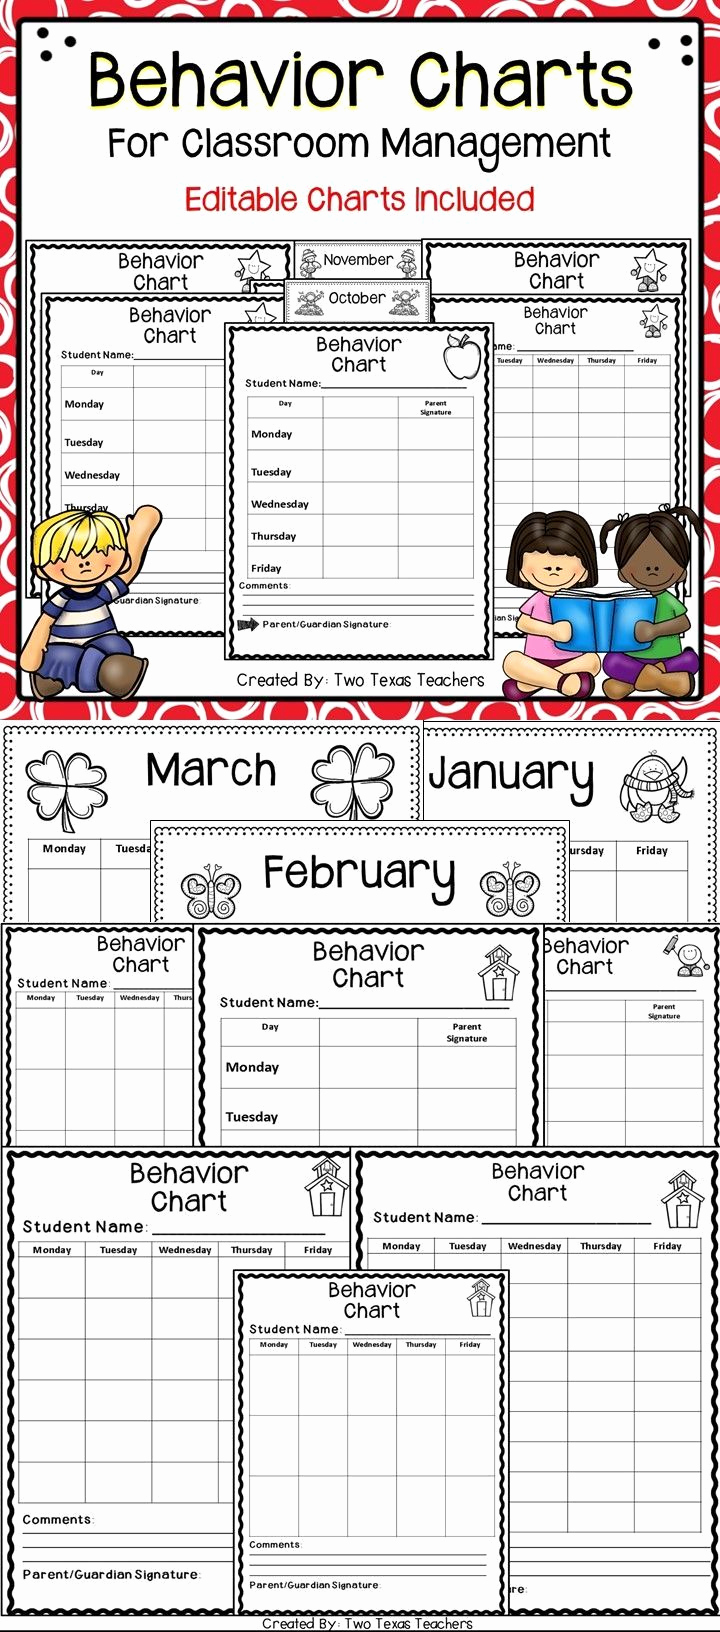 Behavior Charts for Teachers Awesome 262 Best Two Texas Teachers Images On Pinterest